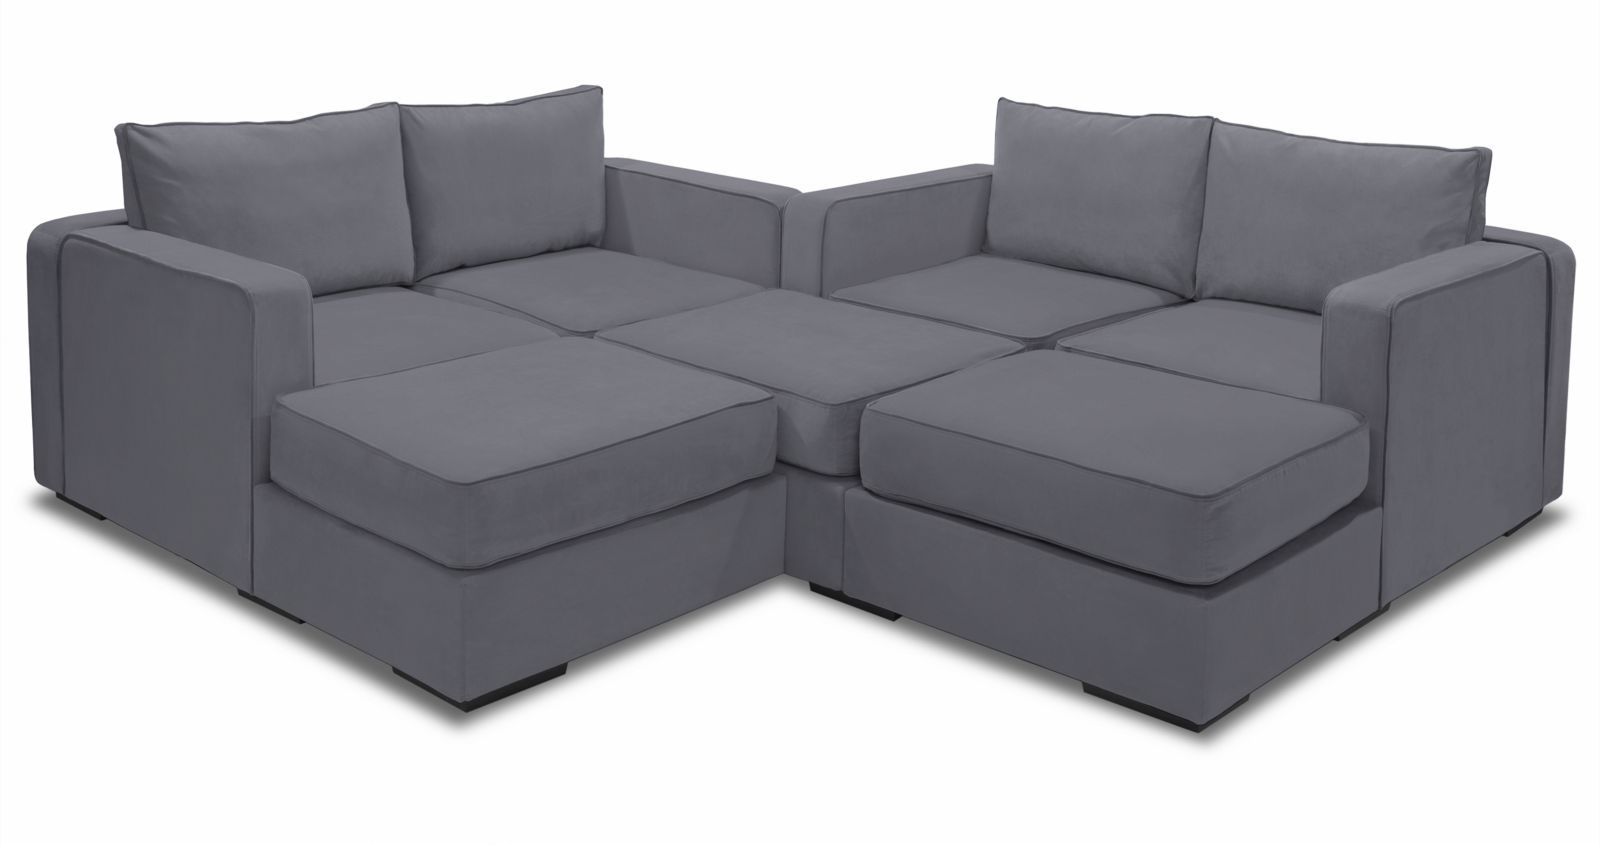 Large Modular Sectional Couch 7 Seats 8 Sides With Images